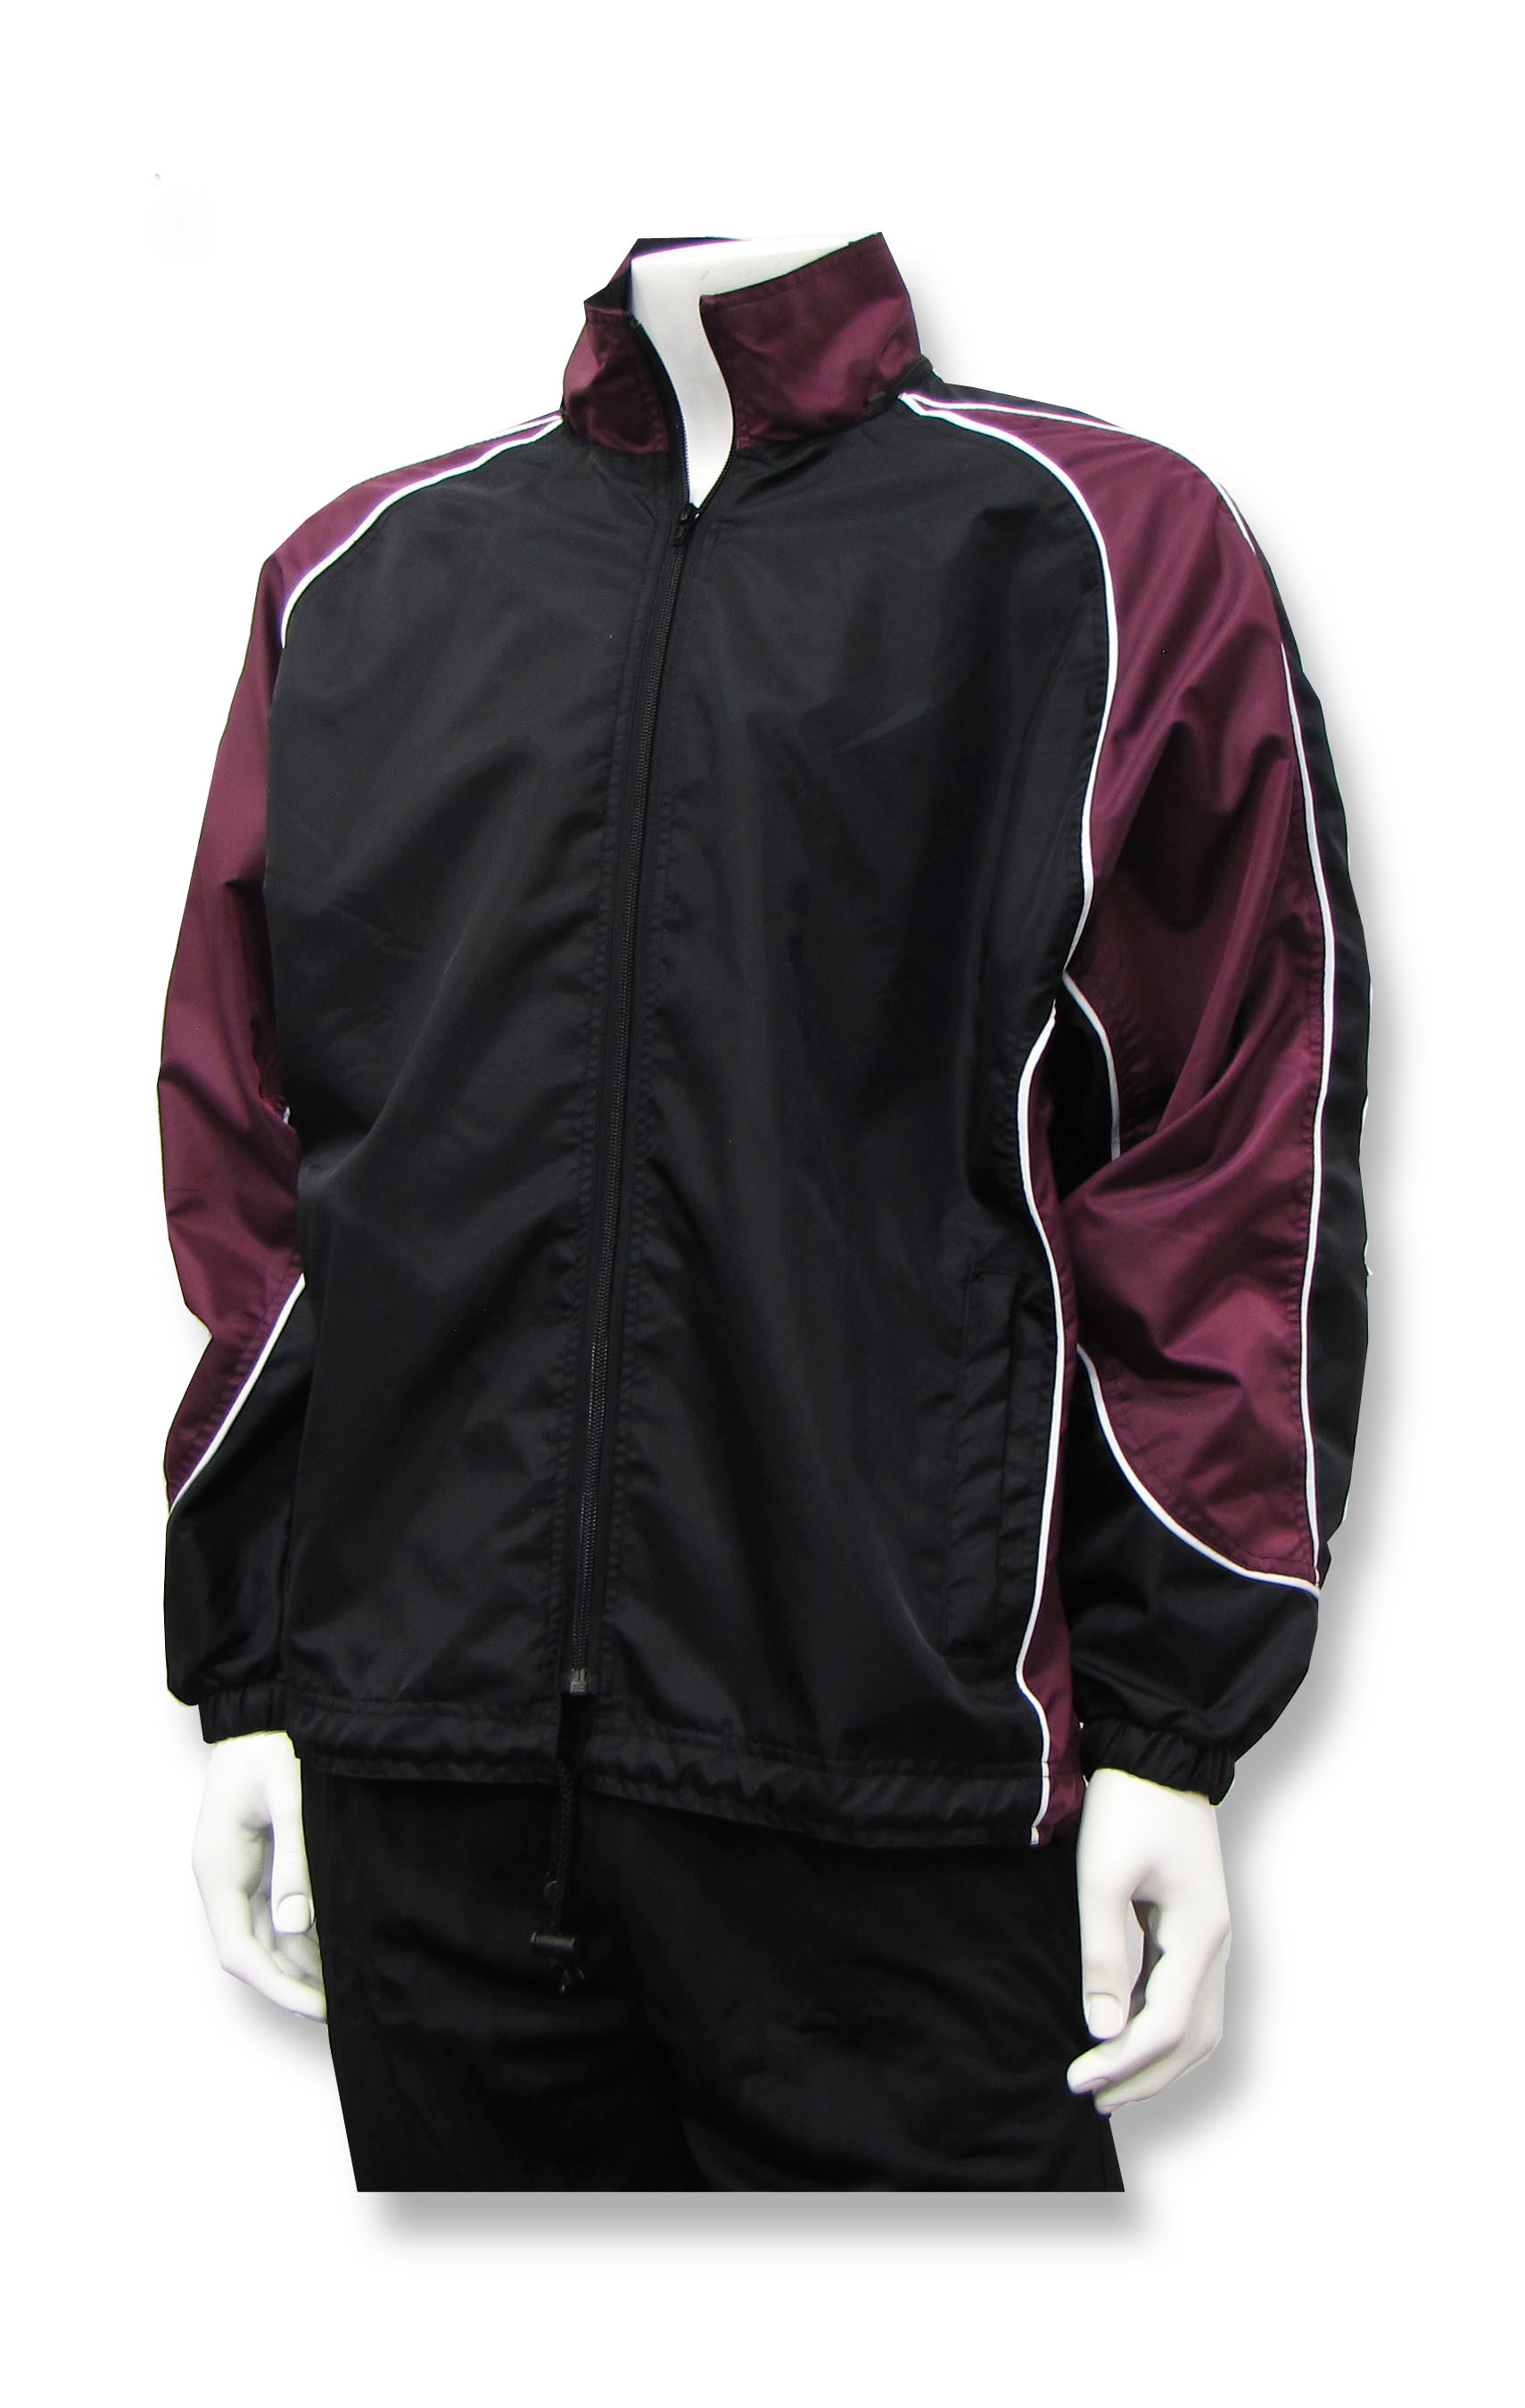 Viper soccer rain jacket in black/maroon by Code Four Athletlcs